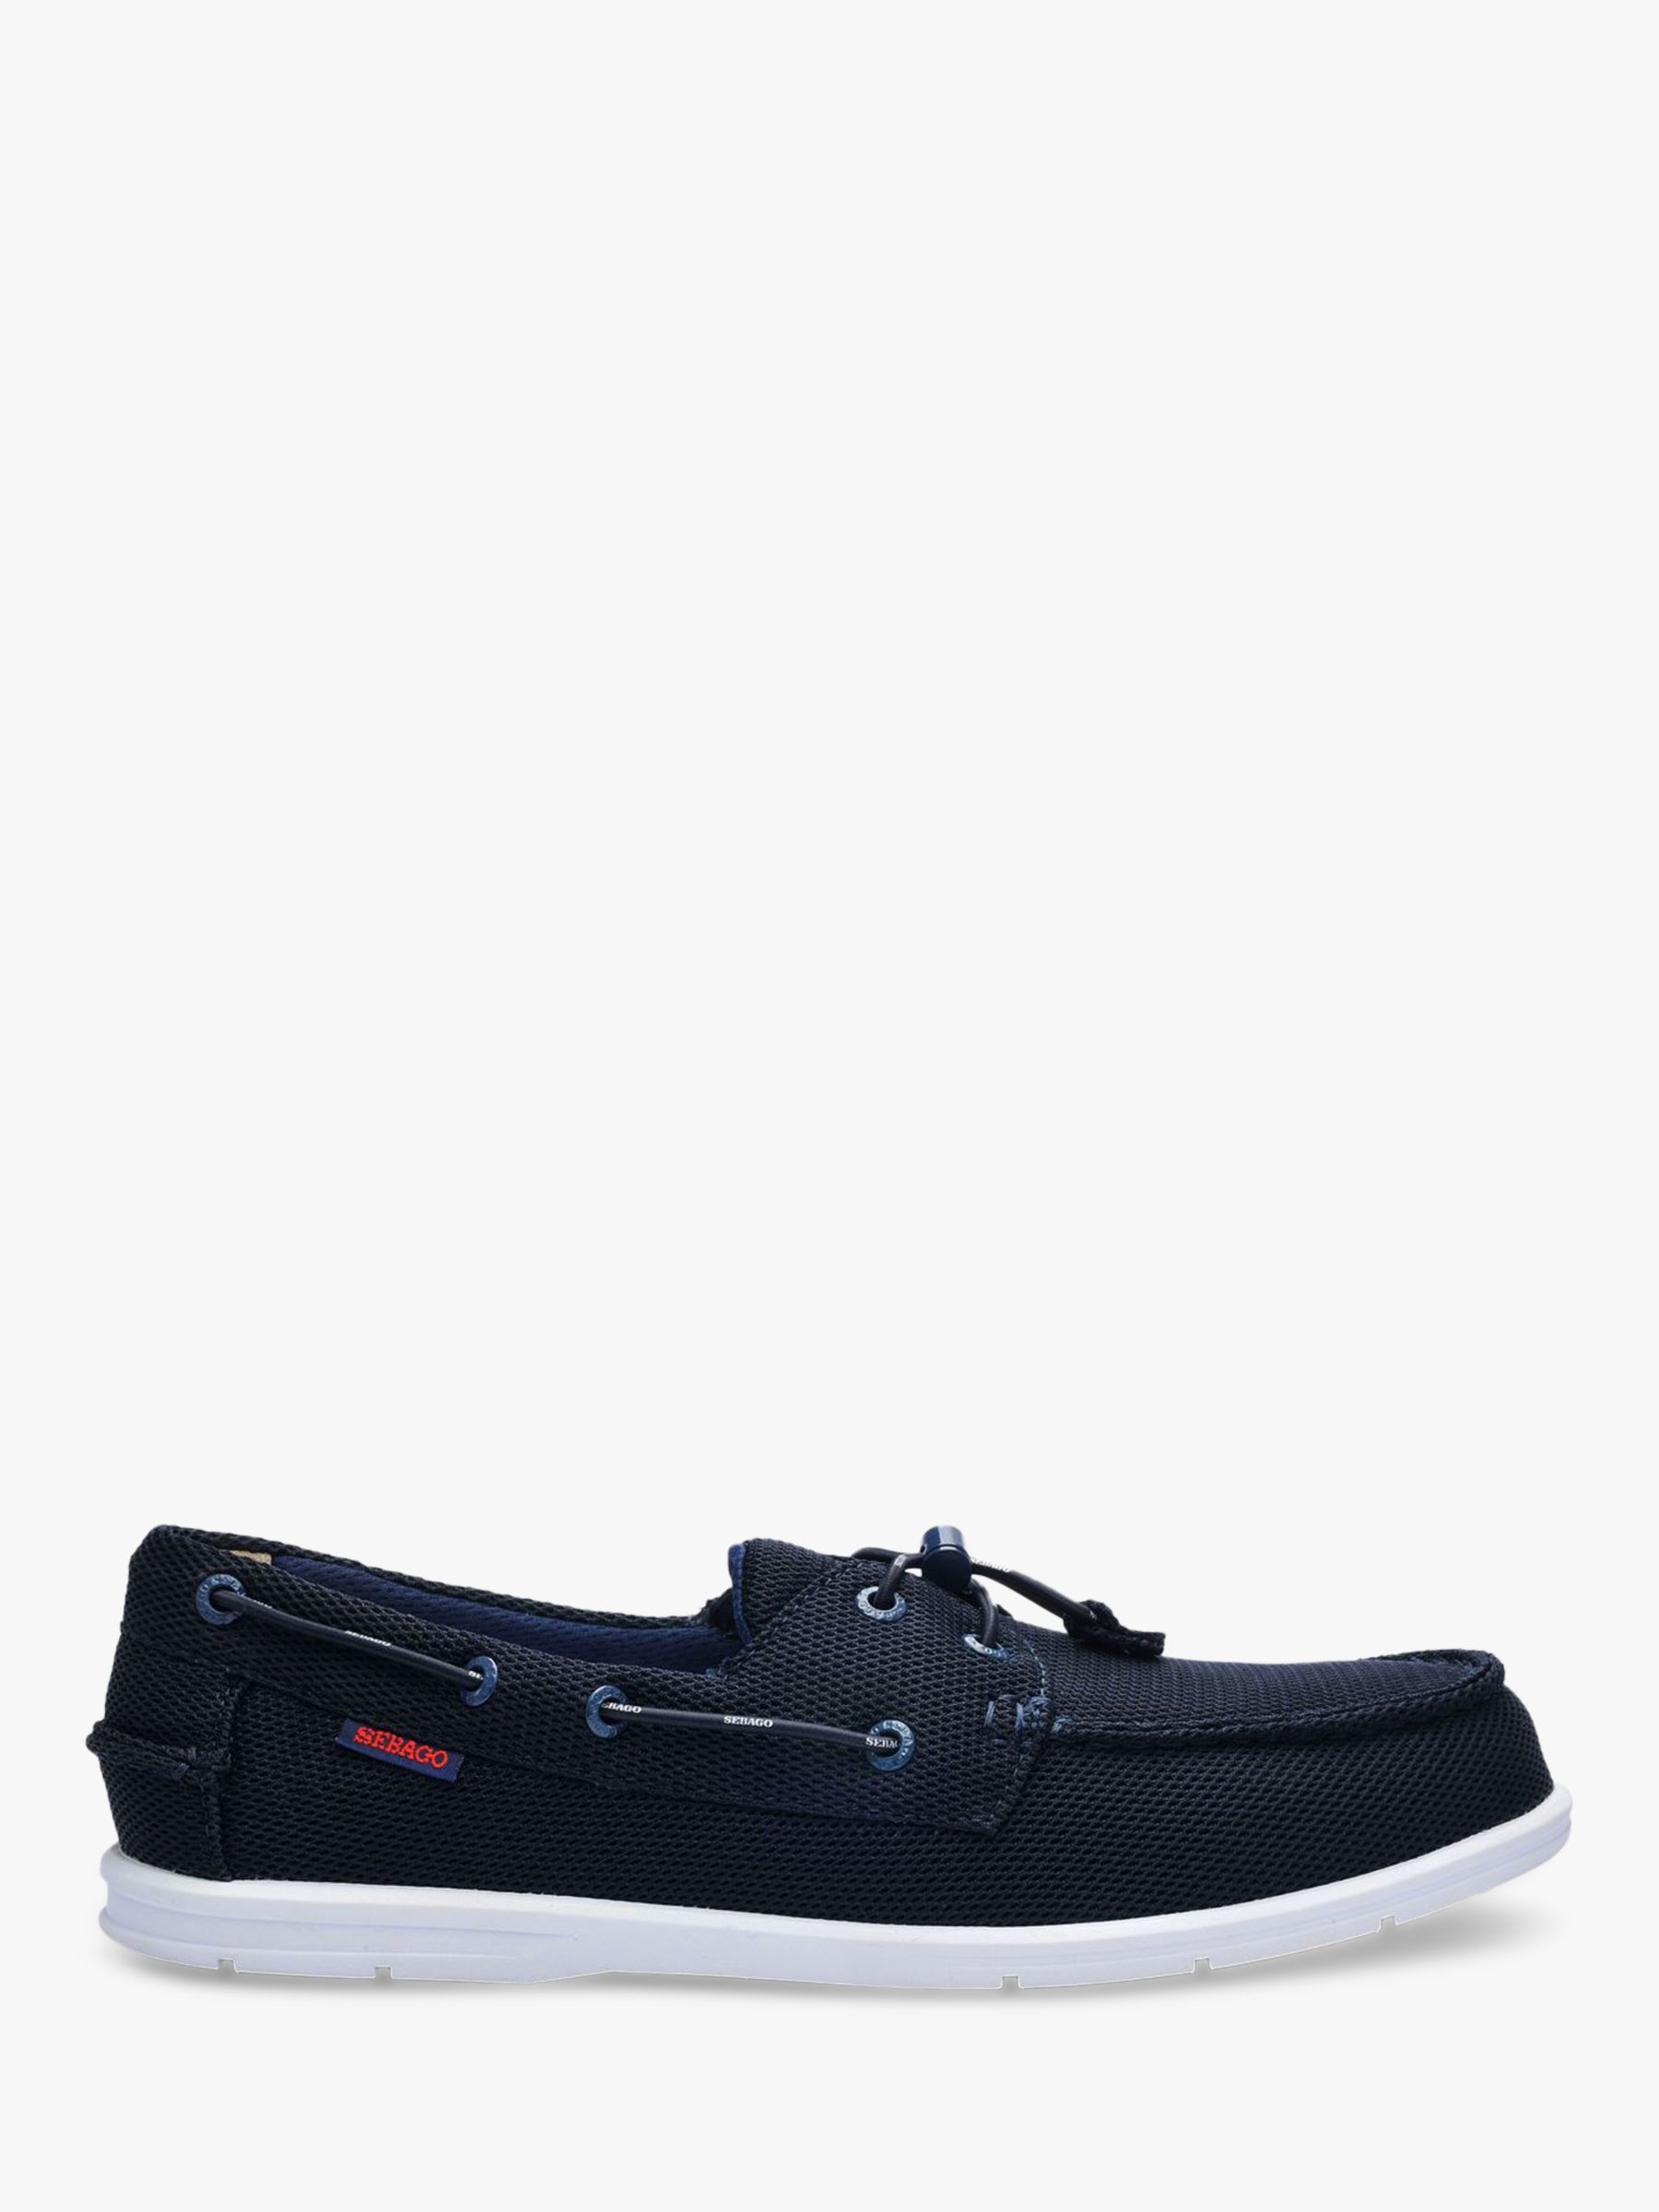 Sebago Sebago Naples Tech Textile Boat Shoes, Navy